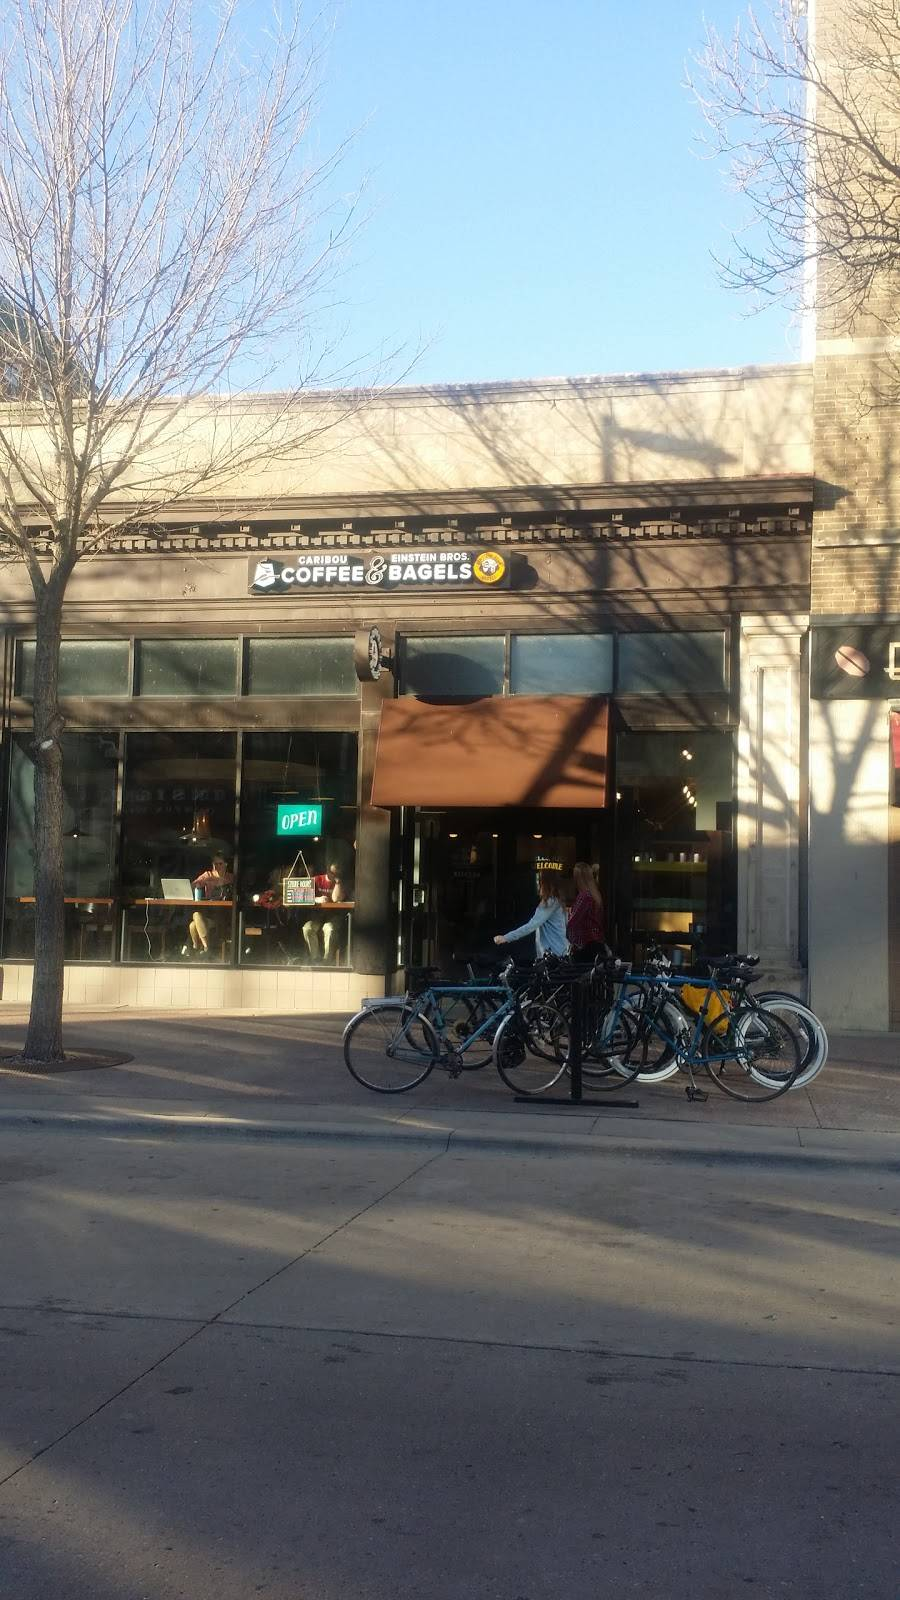 Coffee & Bagels | bakery | 652 State St, Madison, WI 53703, USA | 6082579828 OR +1 608-257-9828